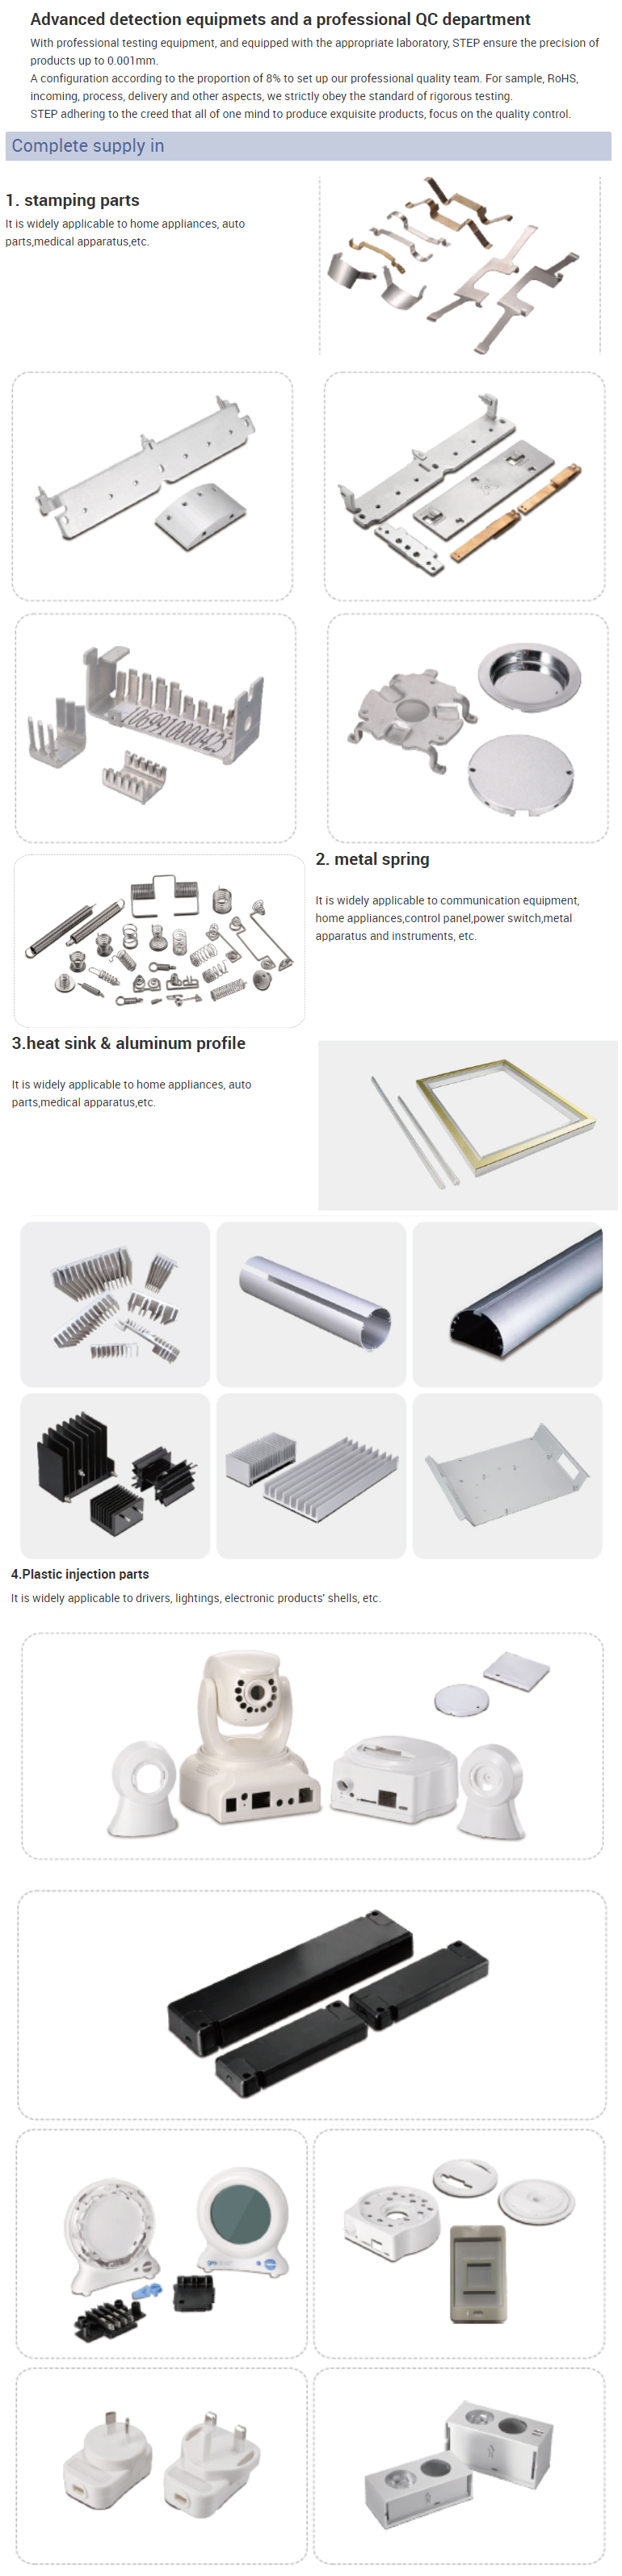 metal  cnc plastic  from China   fixture parts   cnc turning parts   cctv camera parts